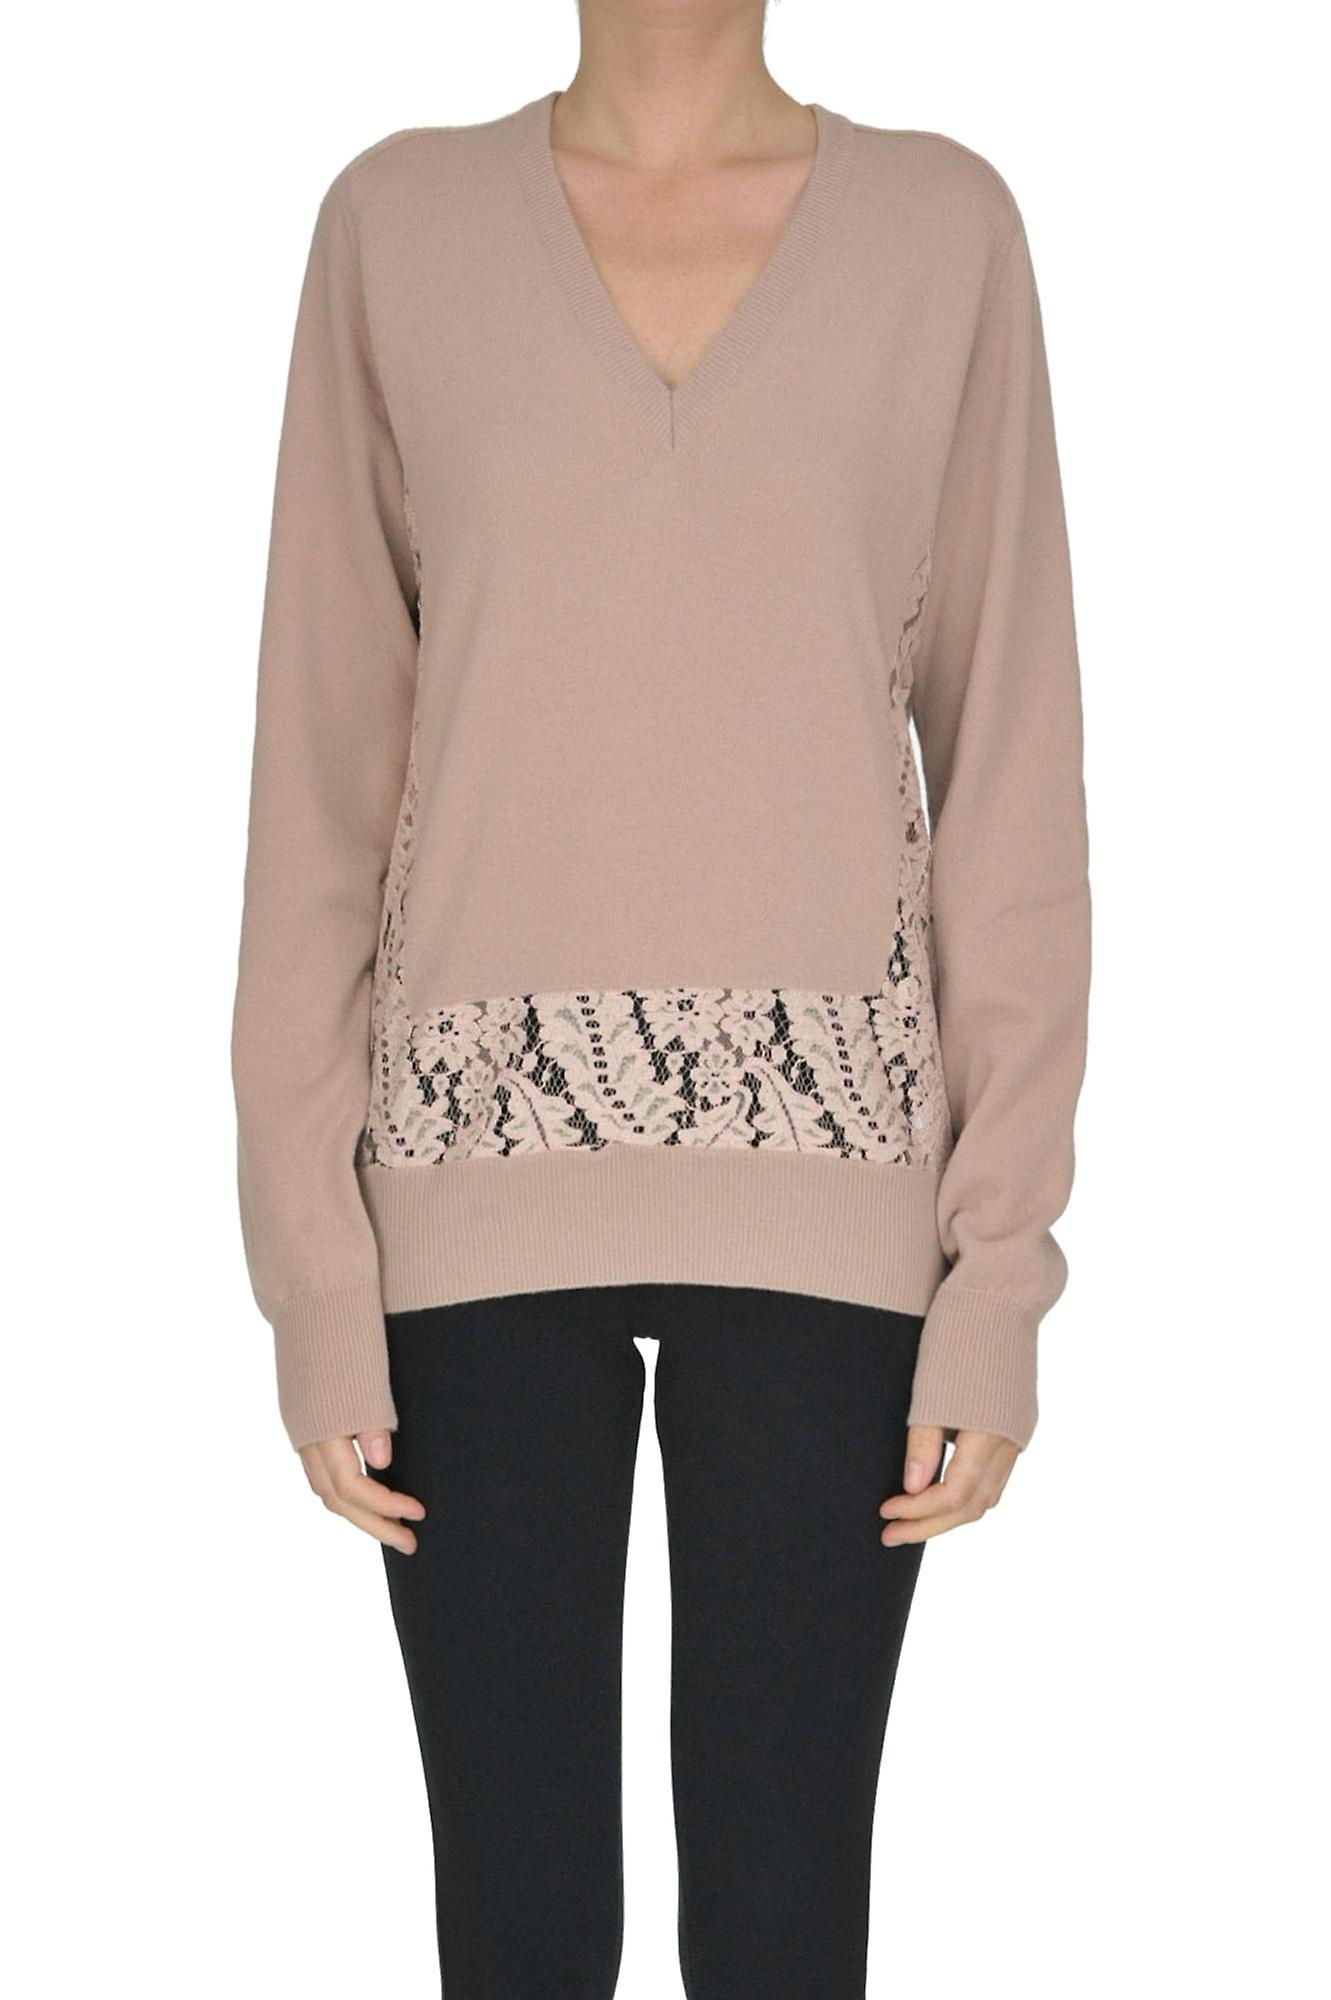 low priced c4e8a d36d0 N ° 21 rosa Wollpullover